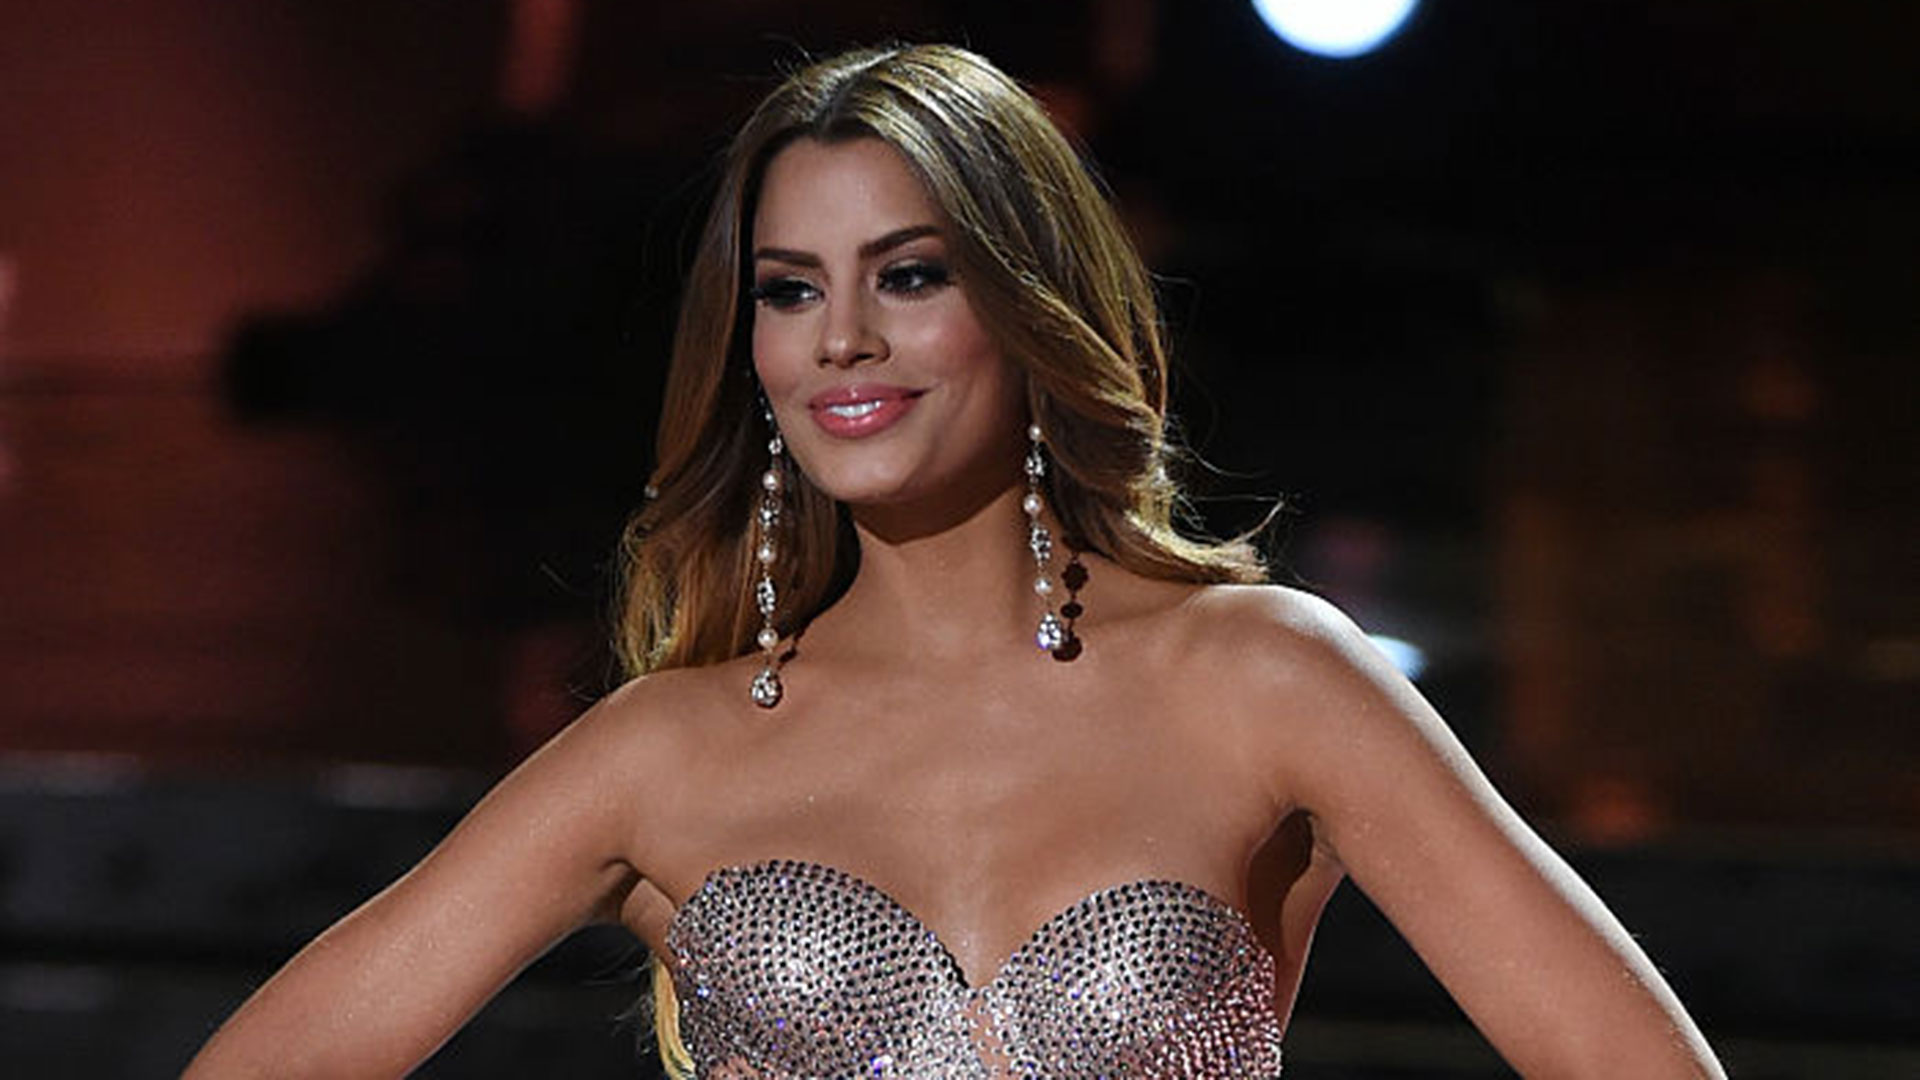 http://www.telemundo.com/sites/nbcutelemundo/files/images/promo/media_gallery/2016/10/19/ariadna-gutierrez-dl.jpg